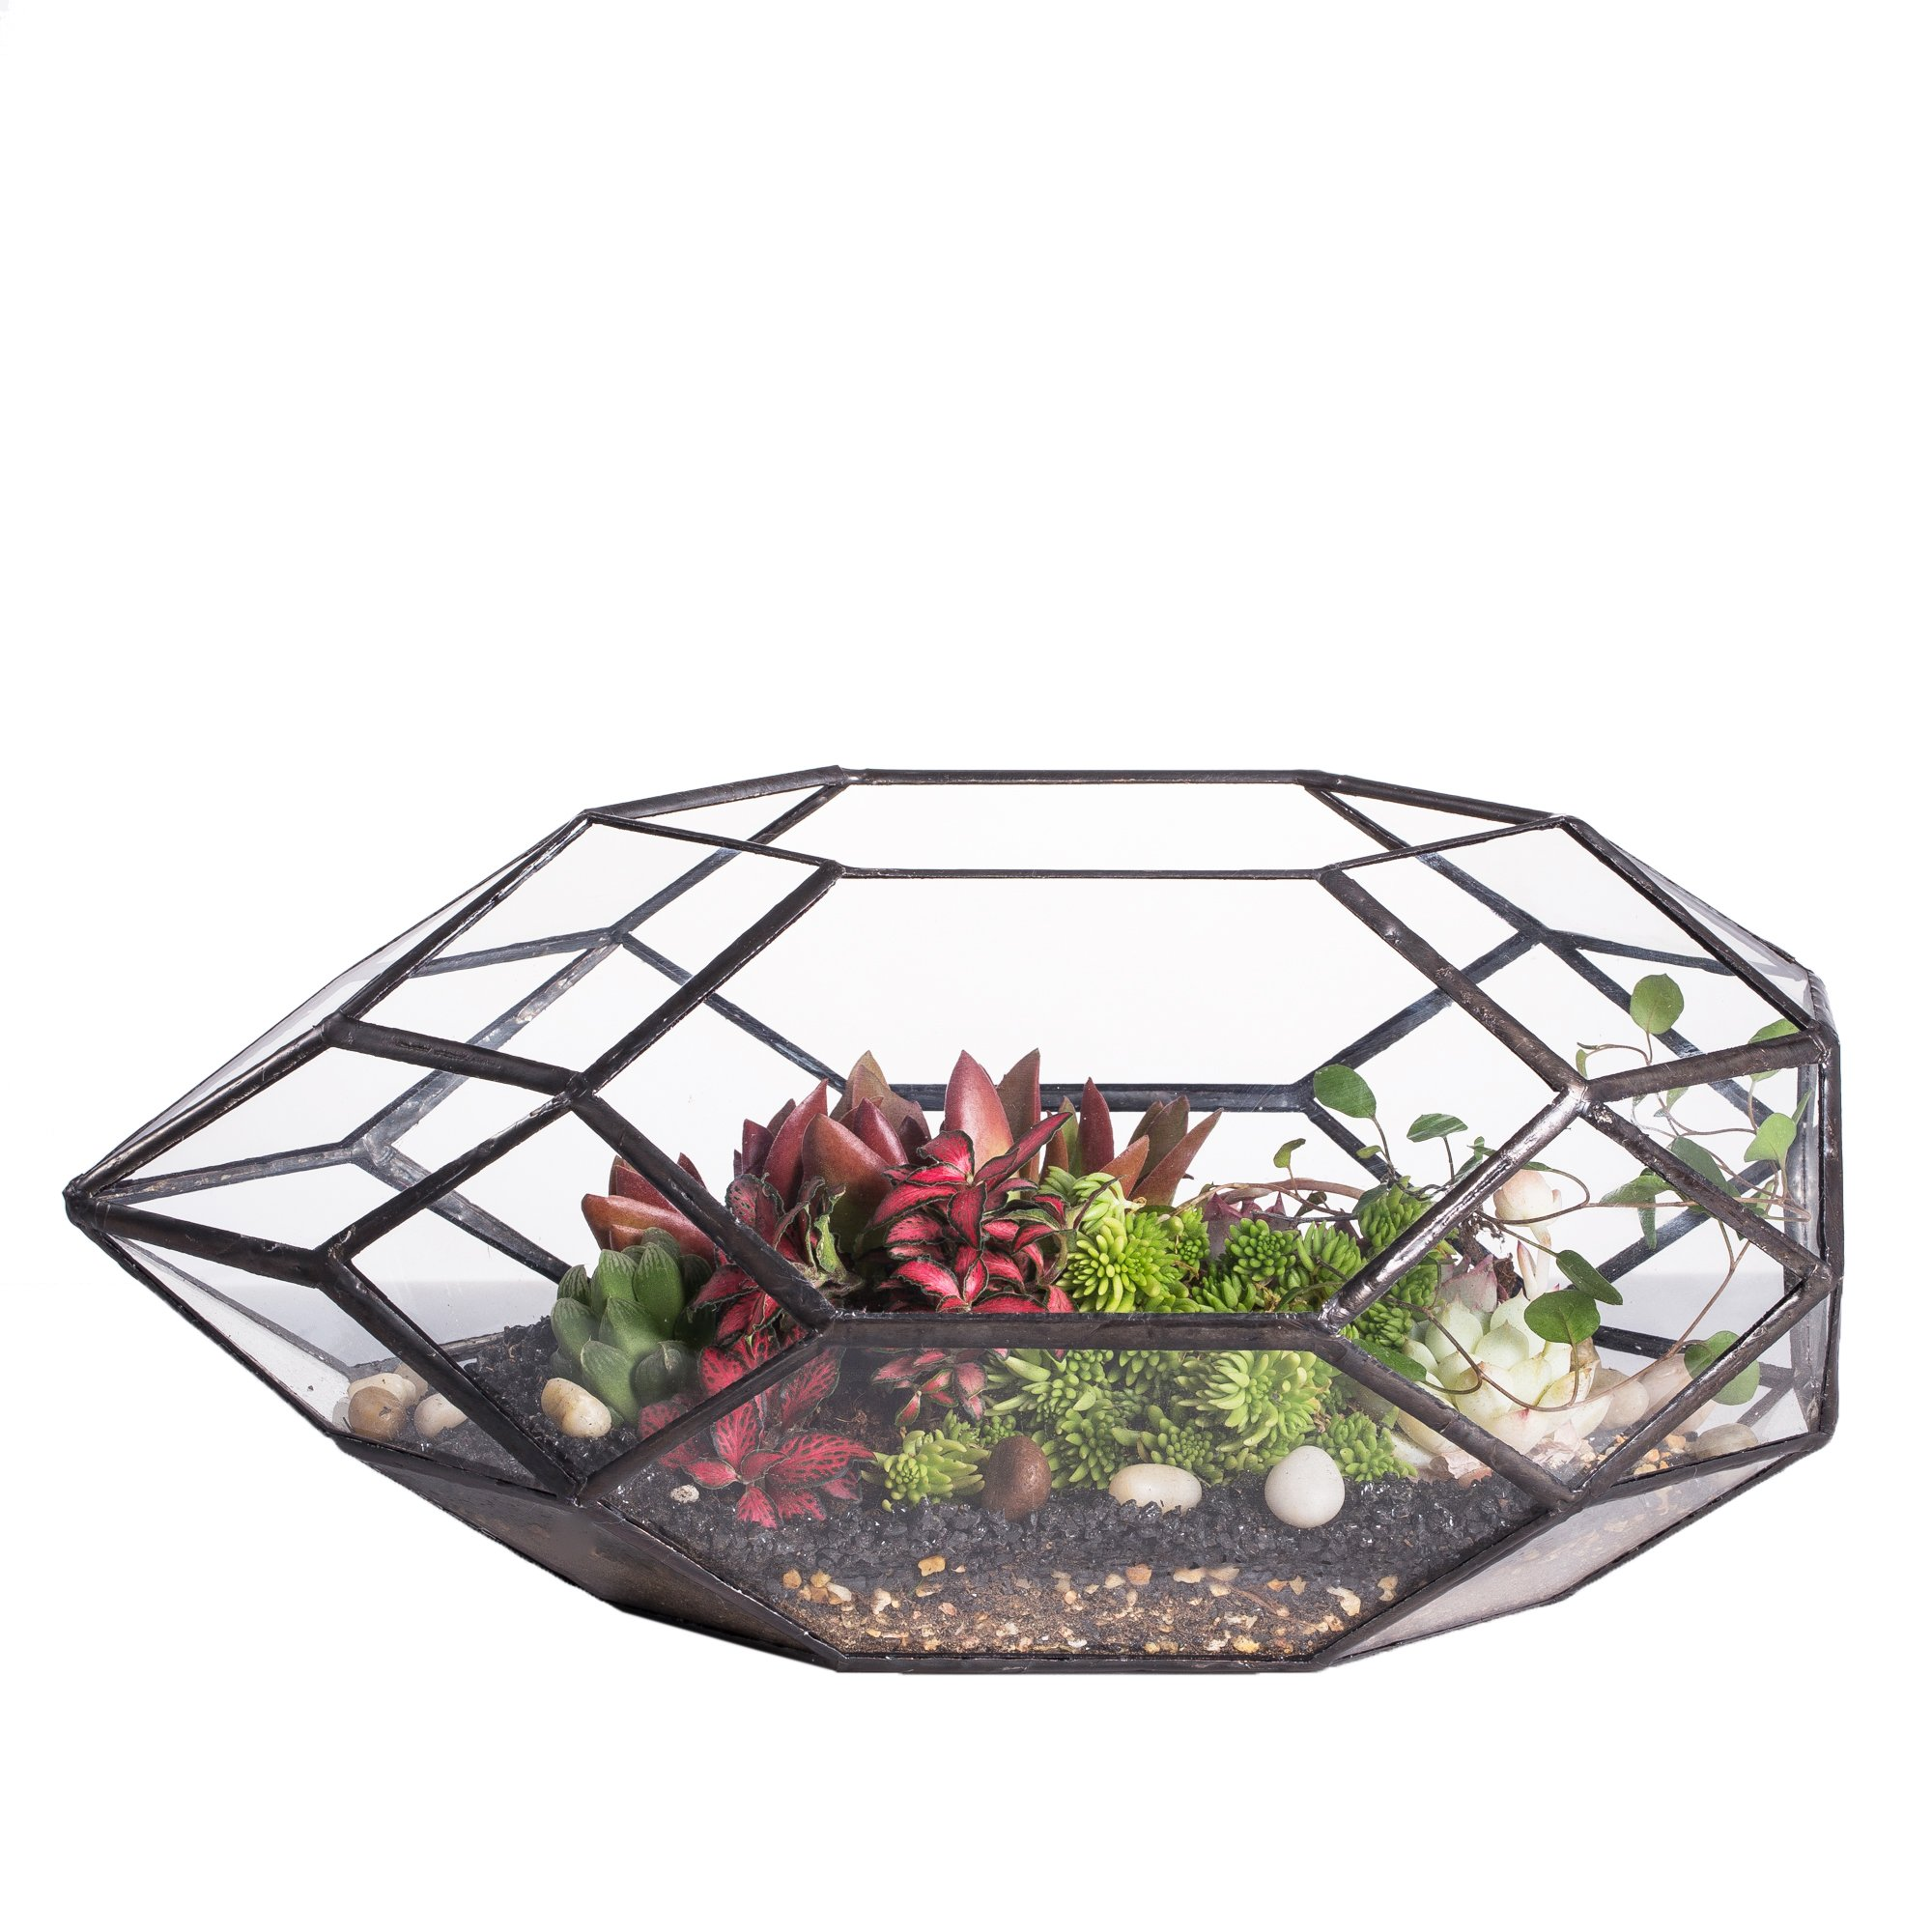 Large Handmade Irregular Polyhedral Geometric Glass Terrarium Planter Indoor Air Plants Holder Window Balcony Display Box Succulent Flower Pot DIY Centerpiece for Wedding Table Garden Decor 11inches by NCYP